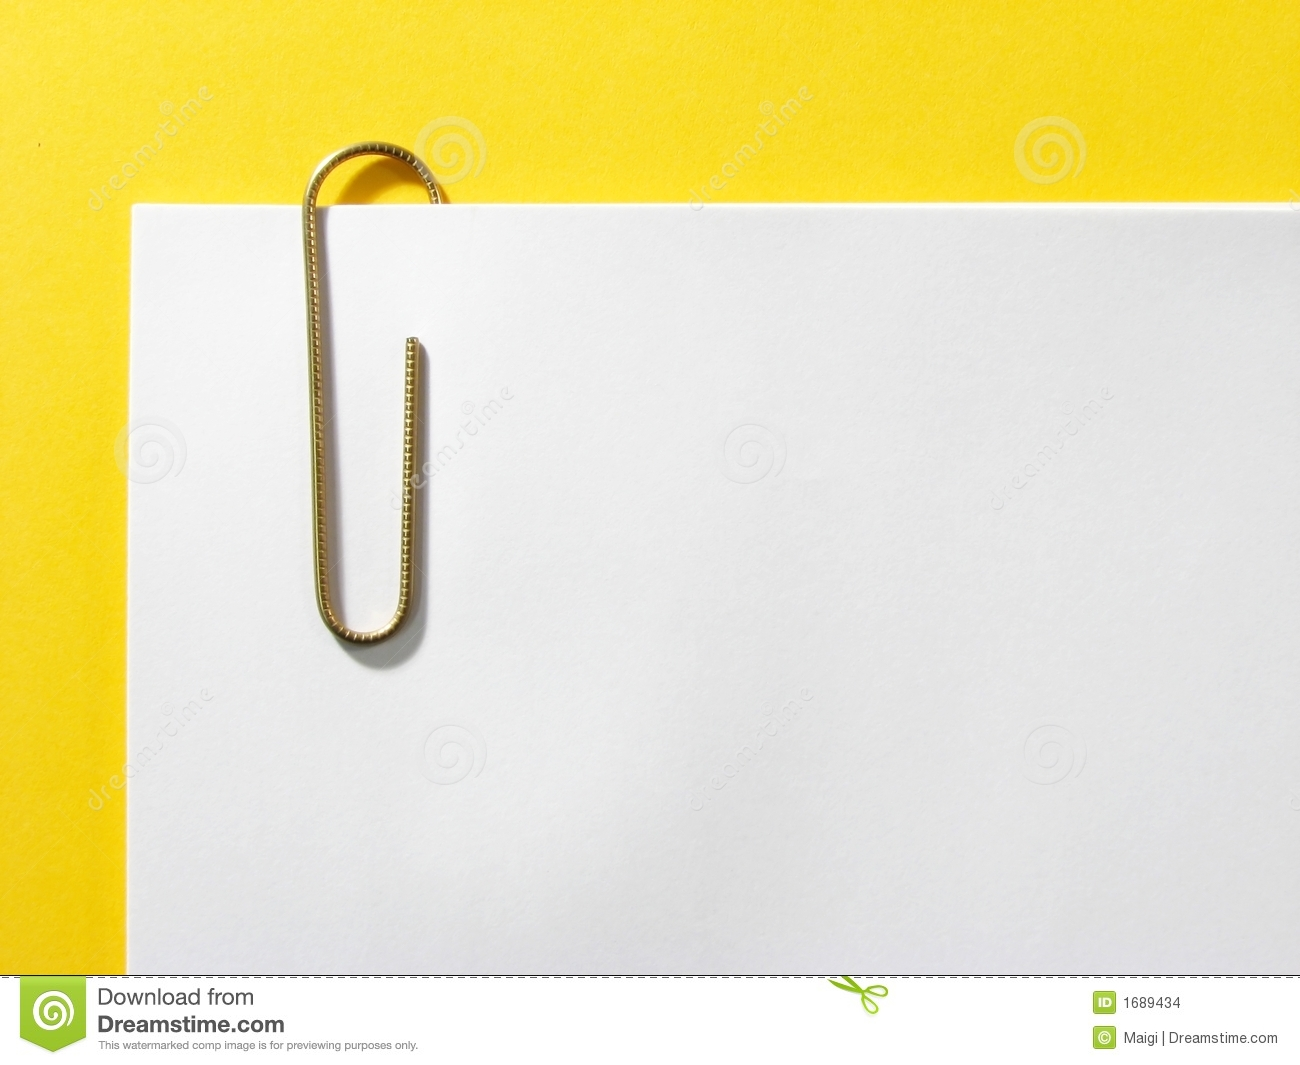 Paper clip holding papers together; yellow background.